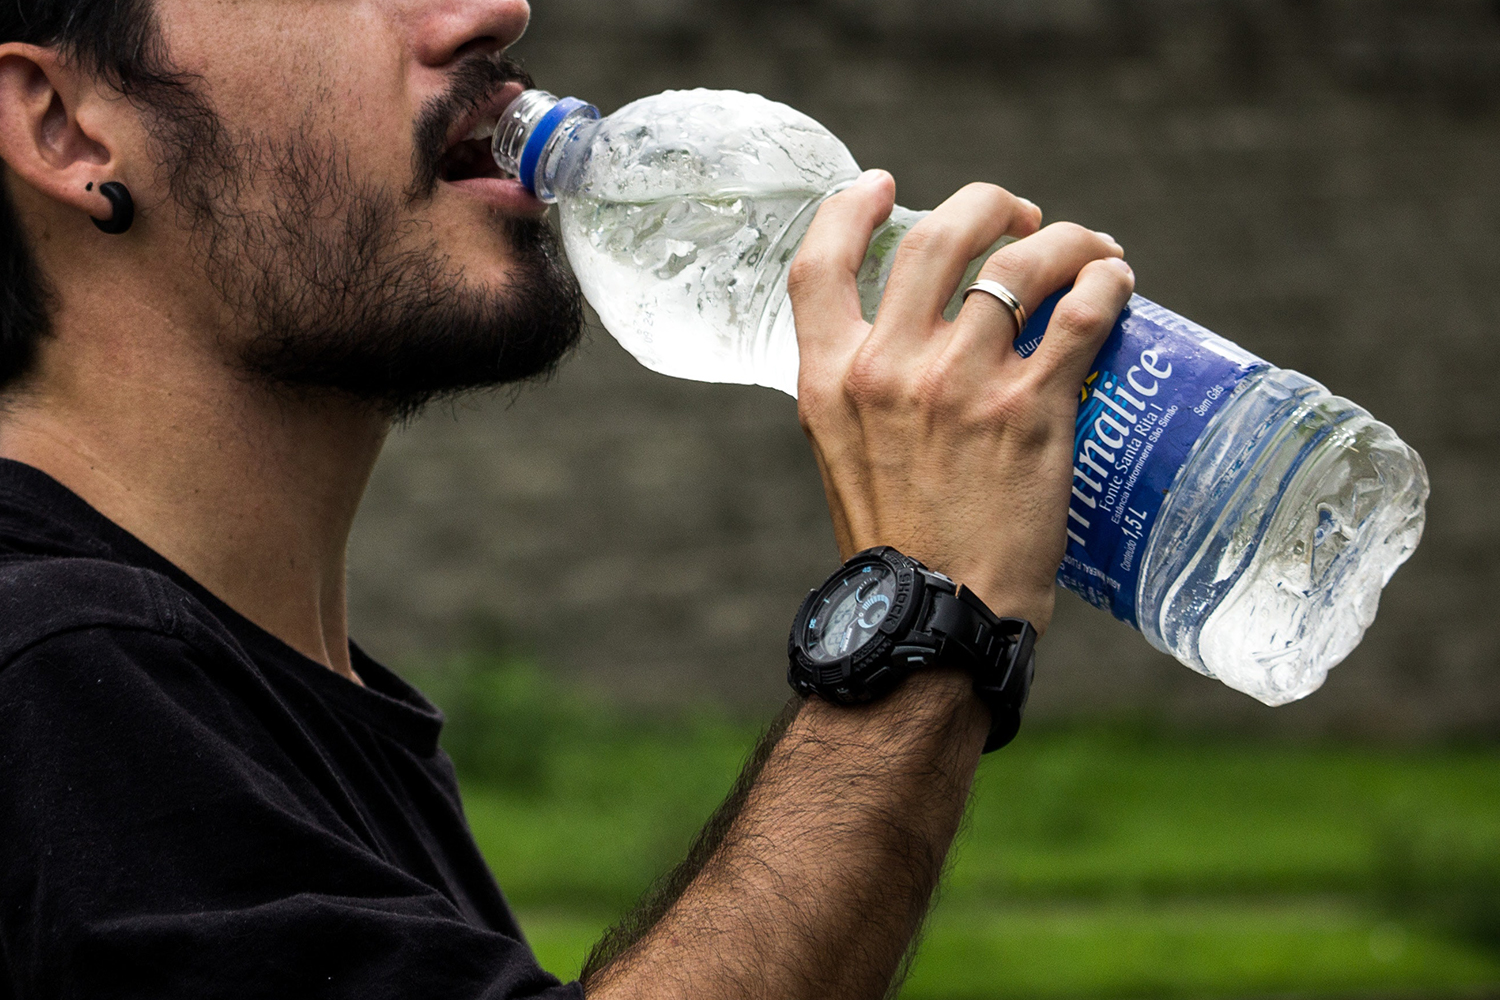 Real Talk: There Is No Excuse for You to Casually Drink Bottled Water